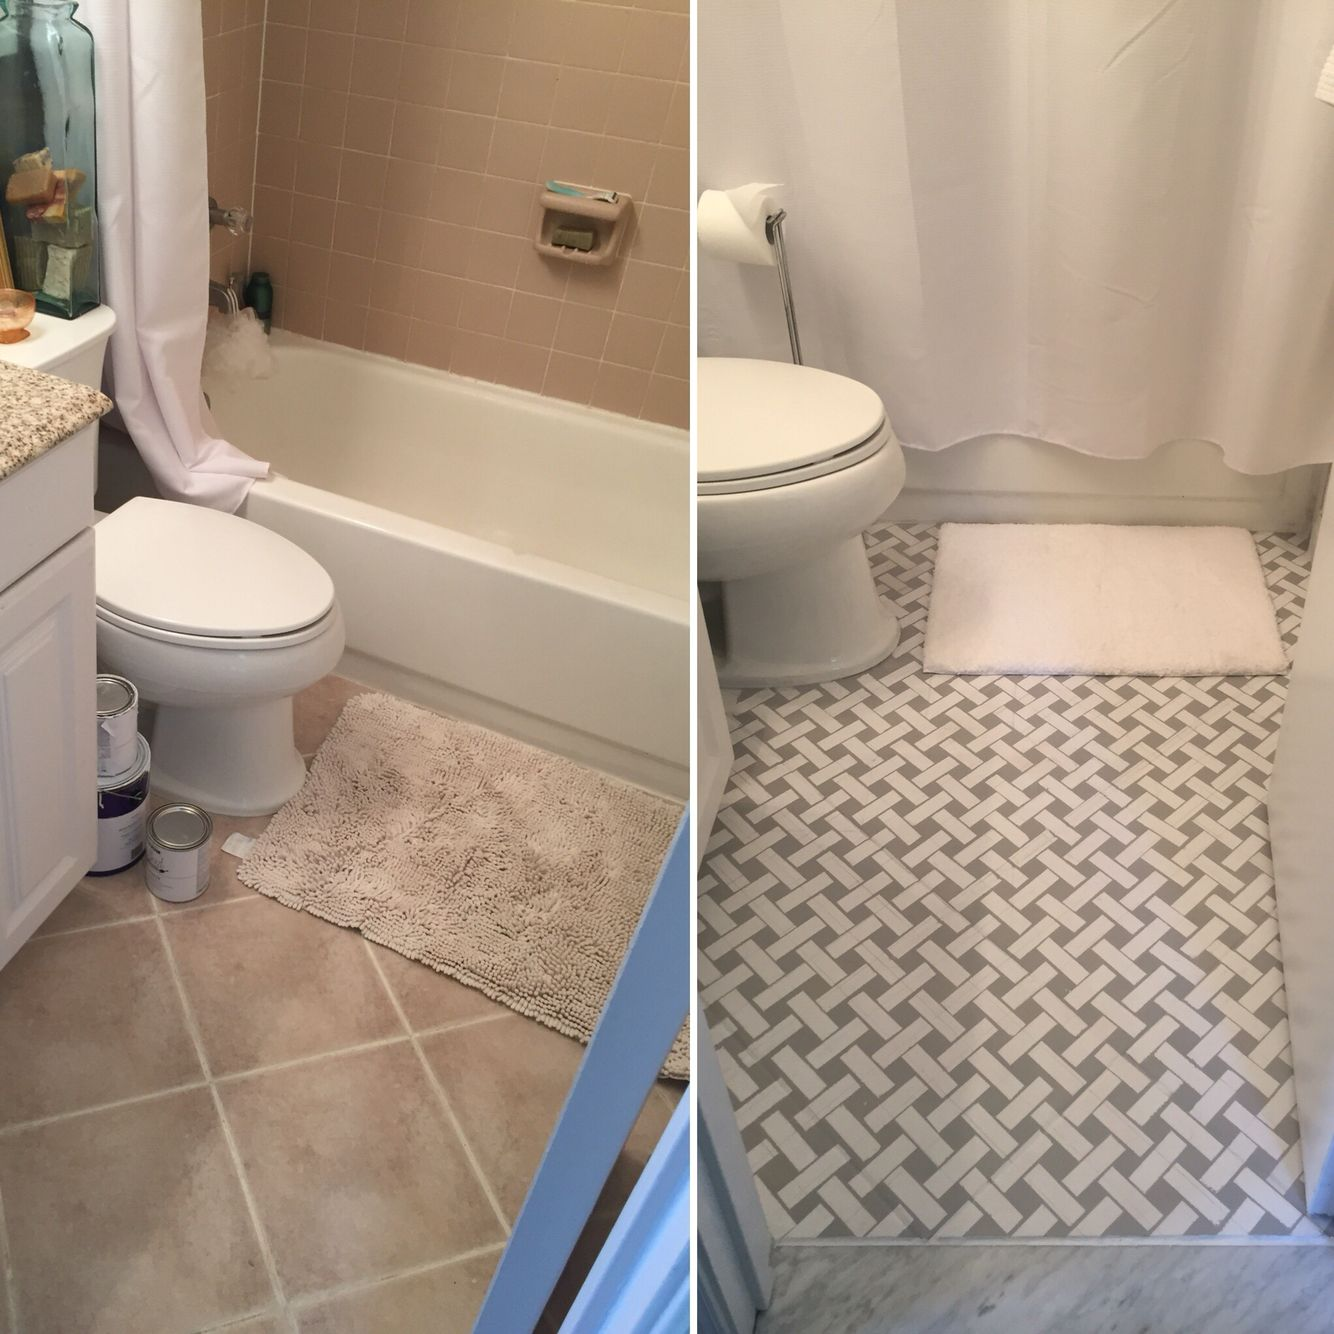 Guest Sara S Bathroom Makeover Tile Floors Painted In Chalk Paint Spray Paint Before Ha Painting Bathroom Tiles Bathroom Tile Diy Painting Tile Floors